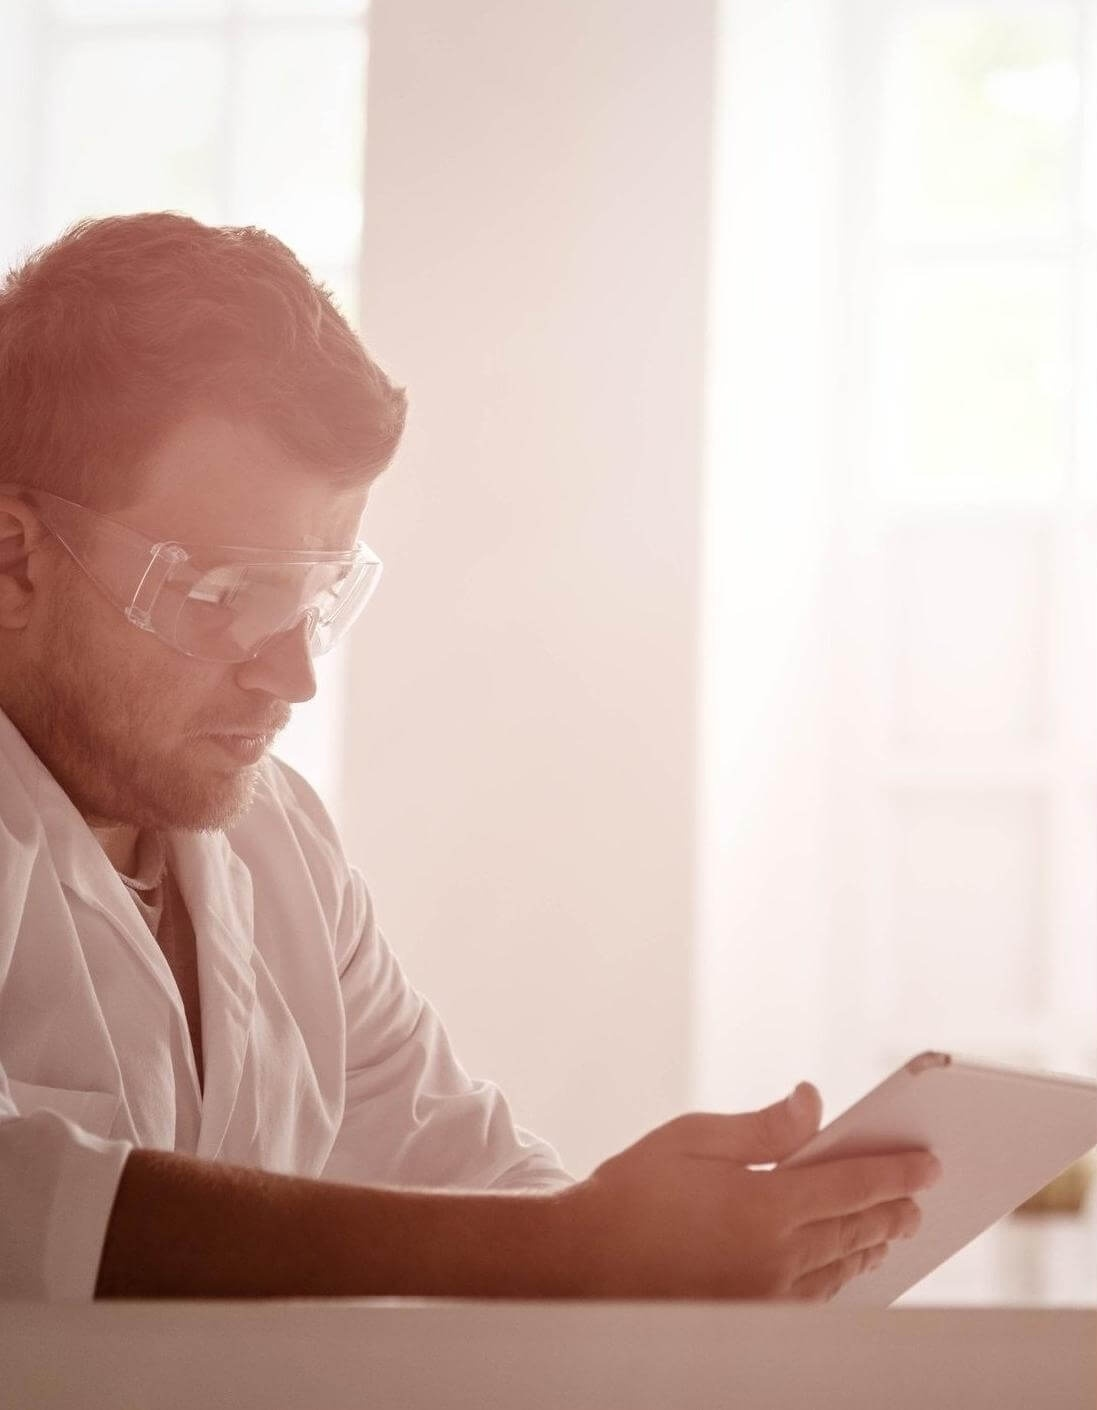 Scientist_Working_Natural_L_iStock-538651195-257494-edited-354167-edited-1-195221-edited